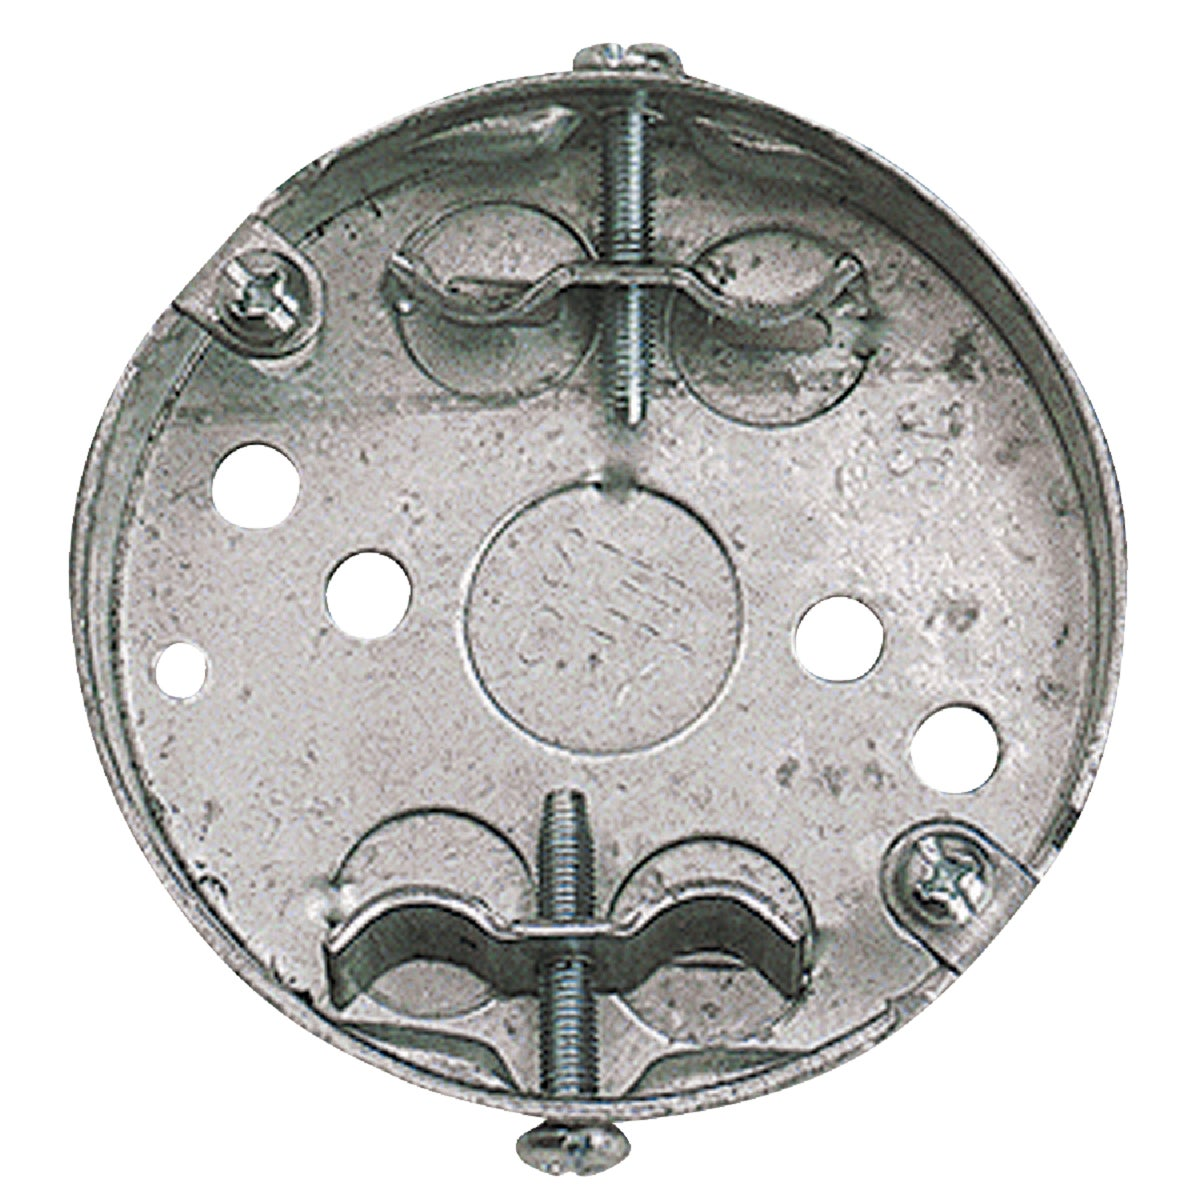 3-1/2X3/4 CEILING PAN - 36125D by Thomas & Betts